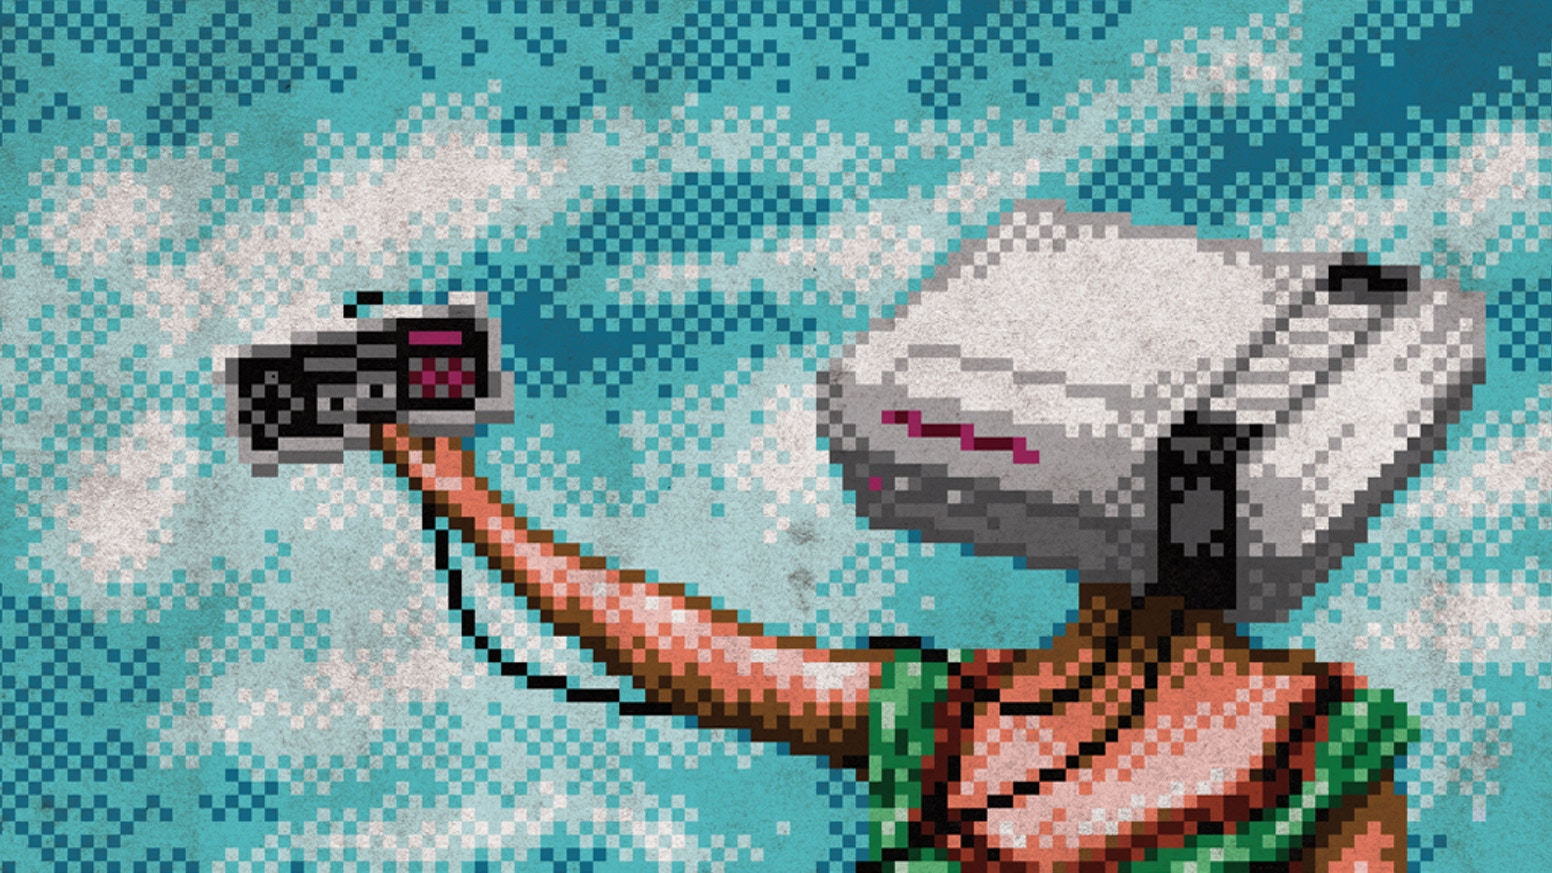 """A chiptune arrangement of Neutral Milk Hotel's """"In The Aeroplane Over The Sea"""" using a Nintendo, pressed to vinyl record."""